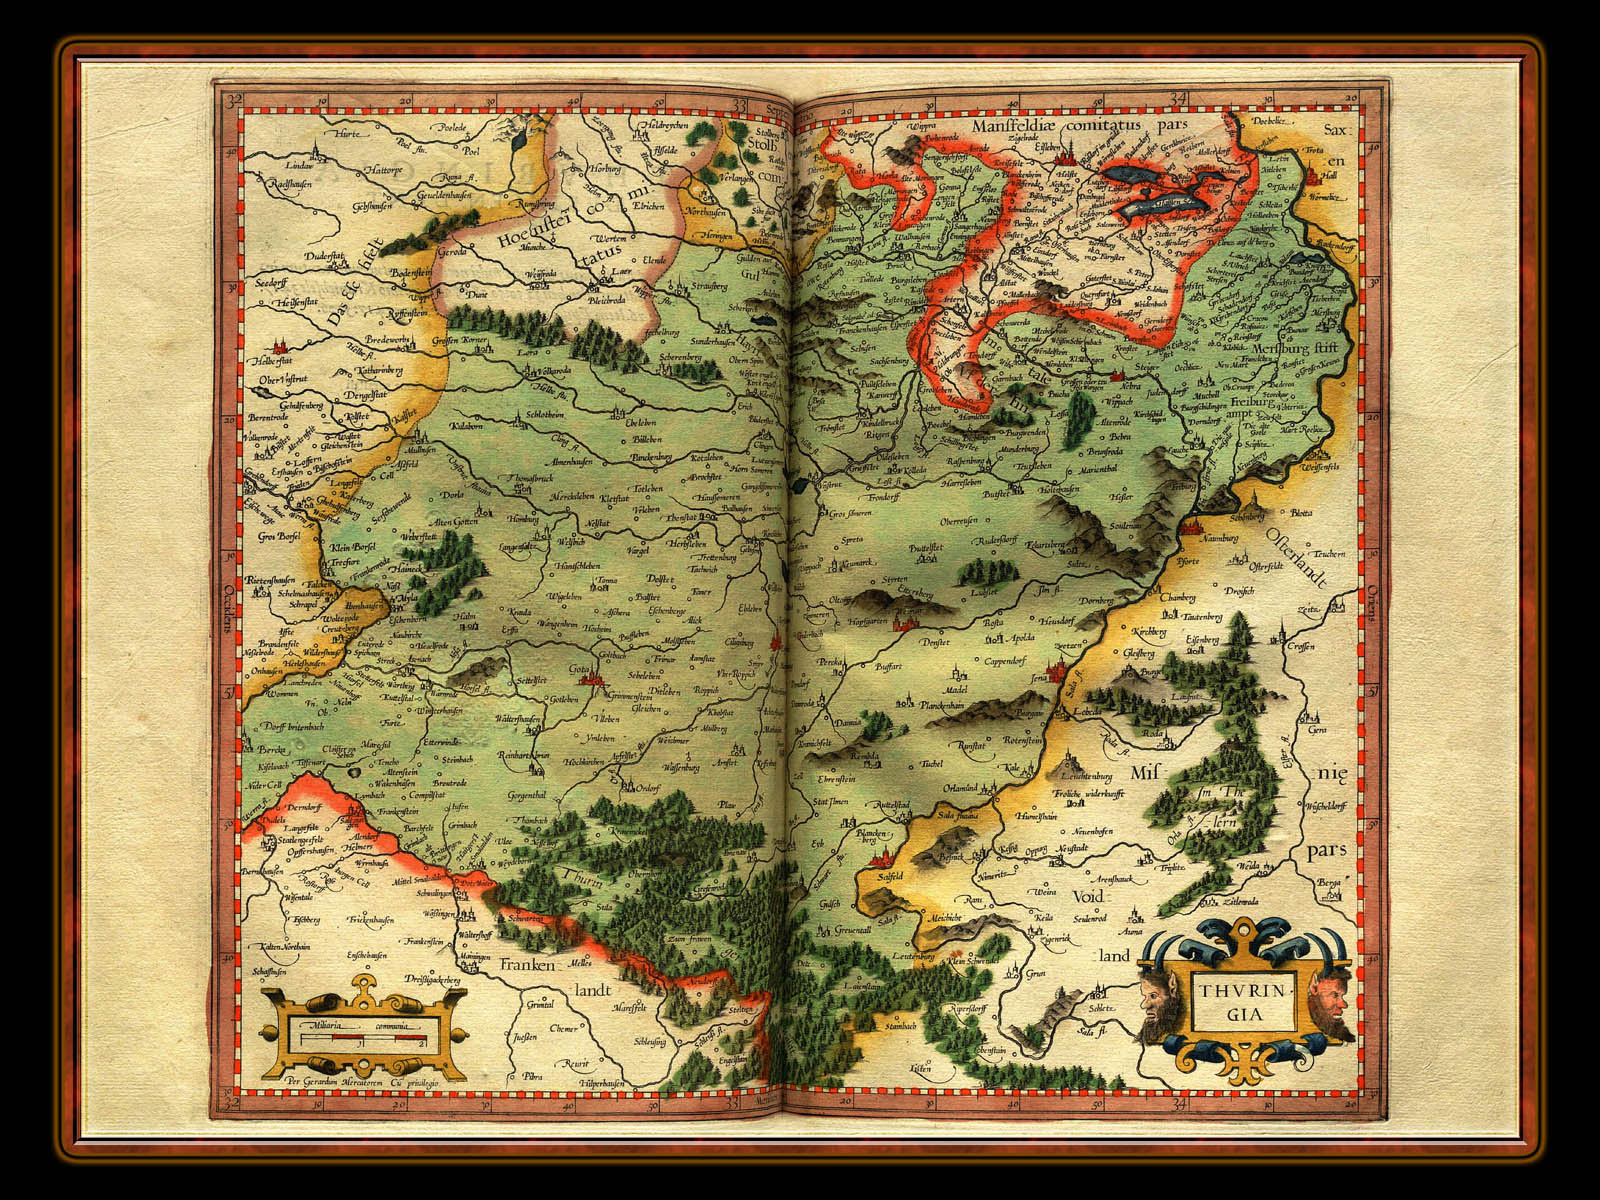 """Gerhard Mercator 1595 World Atlas - Cosmographicae"" - Wallpaper No. 34 of 106. Right click for saving options."